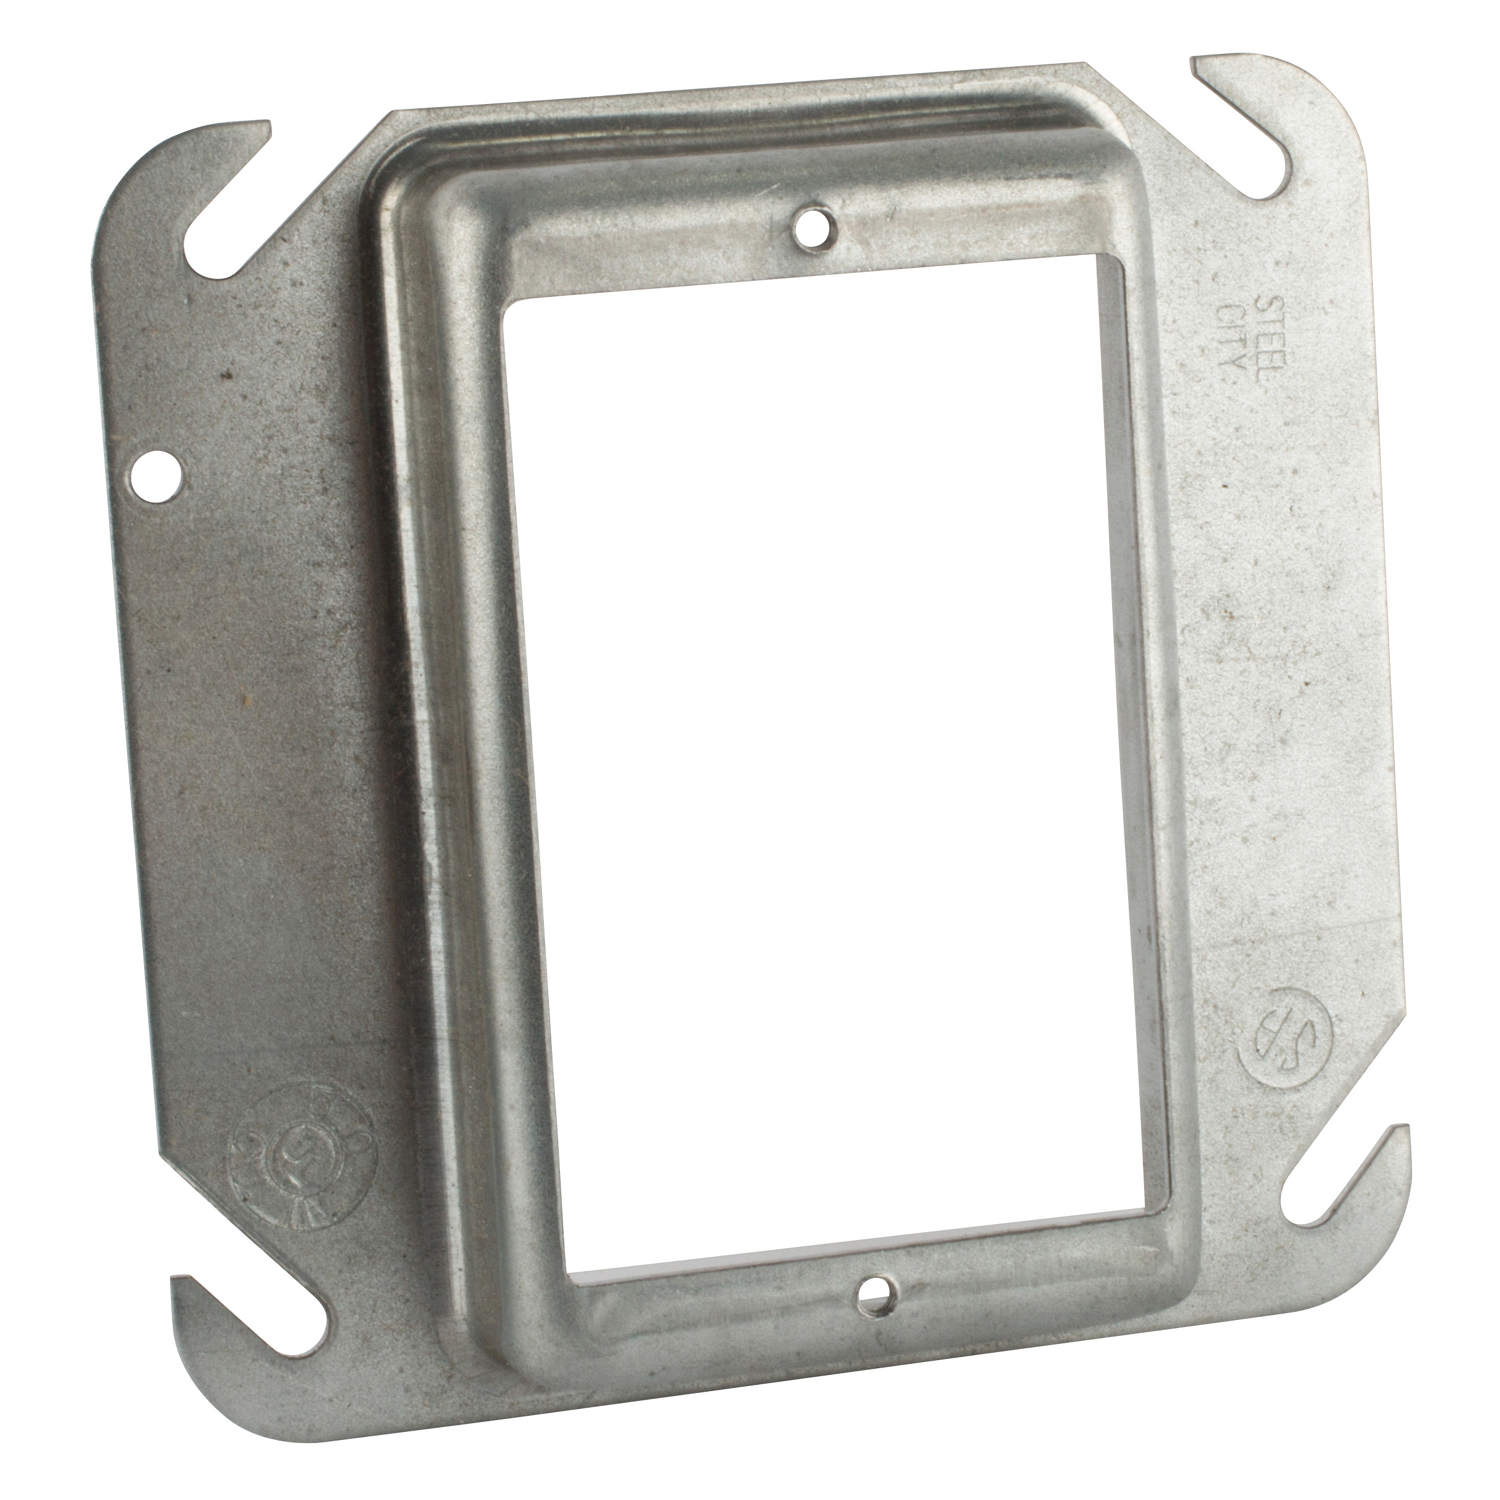 STL-CTY 52C493/4 STEEL COVER